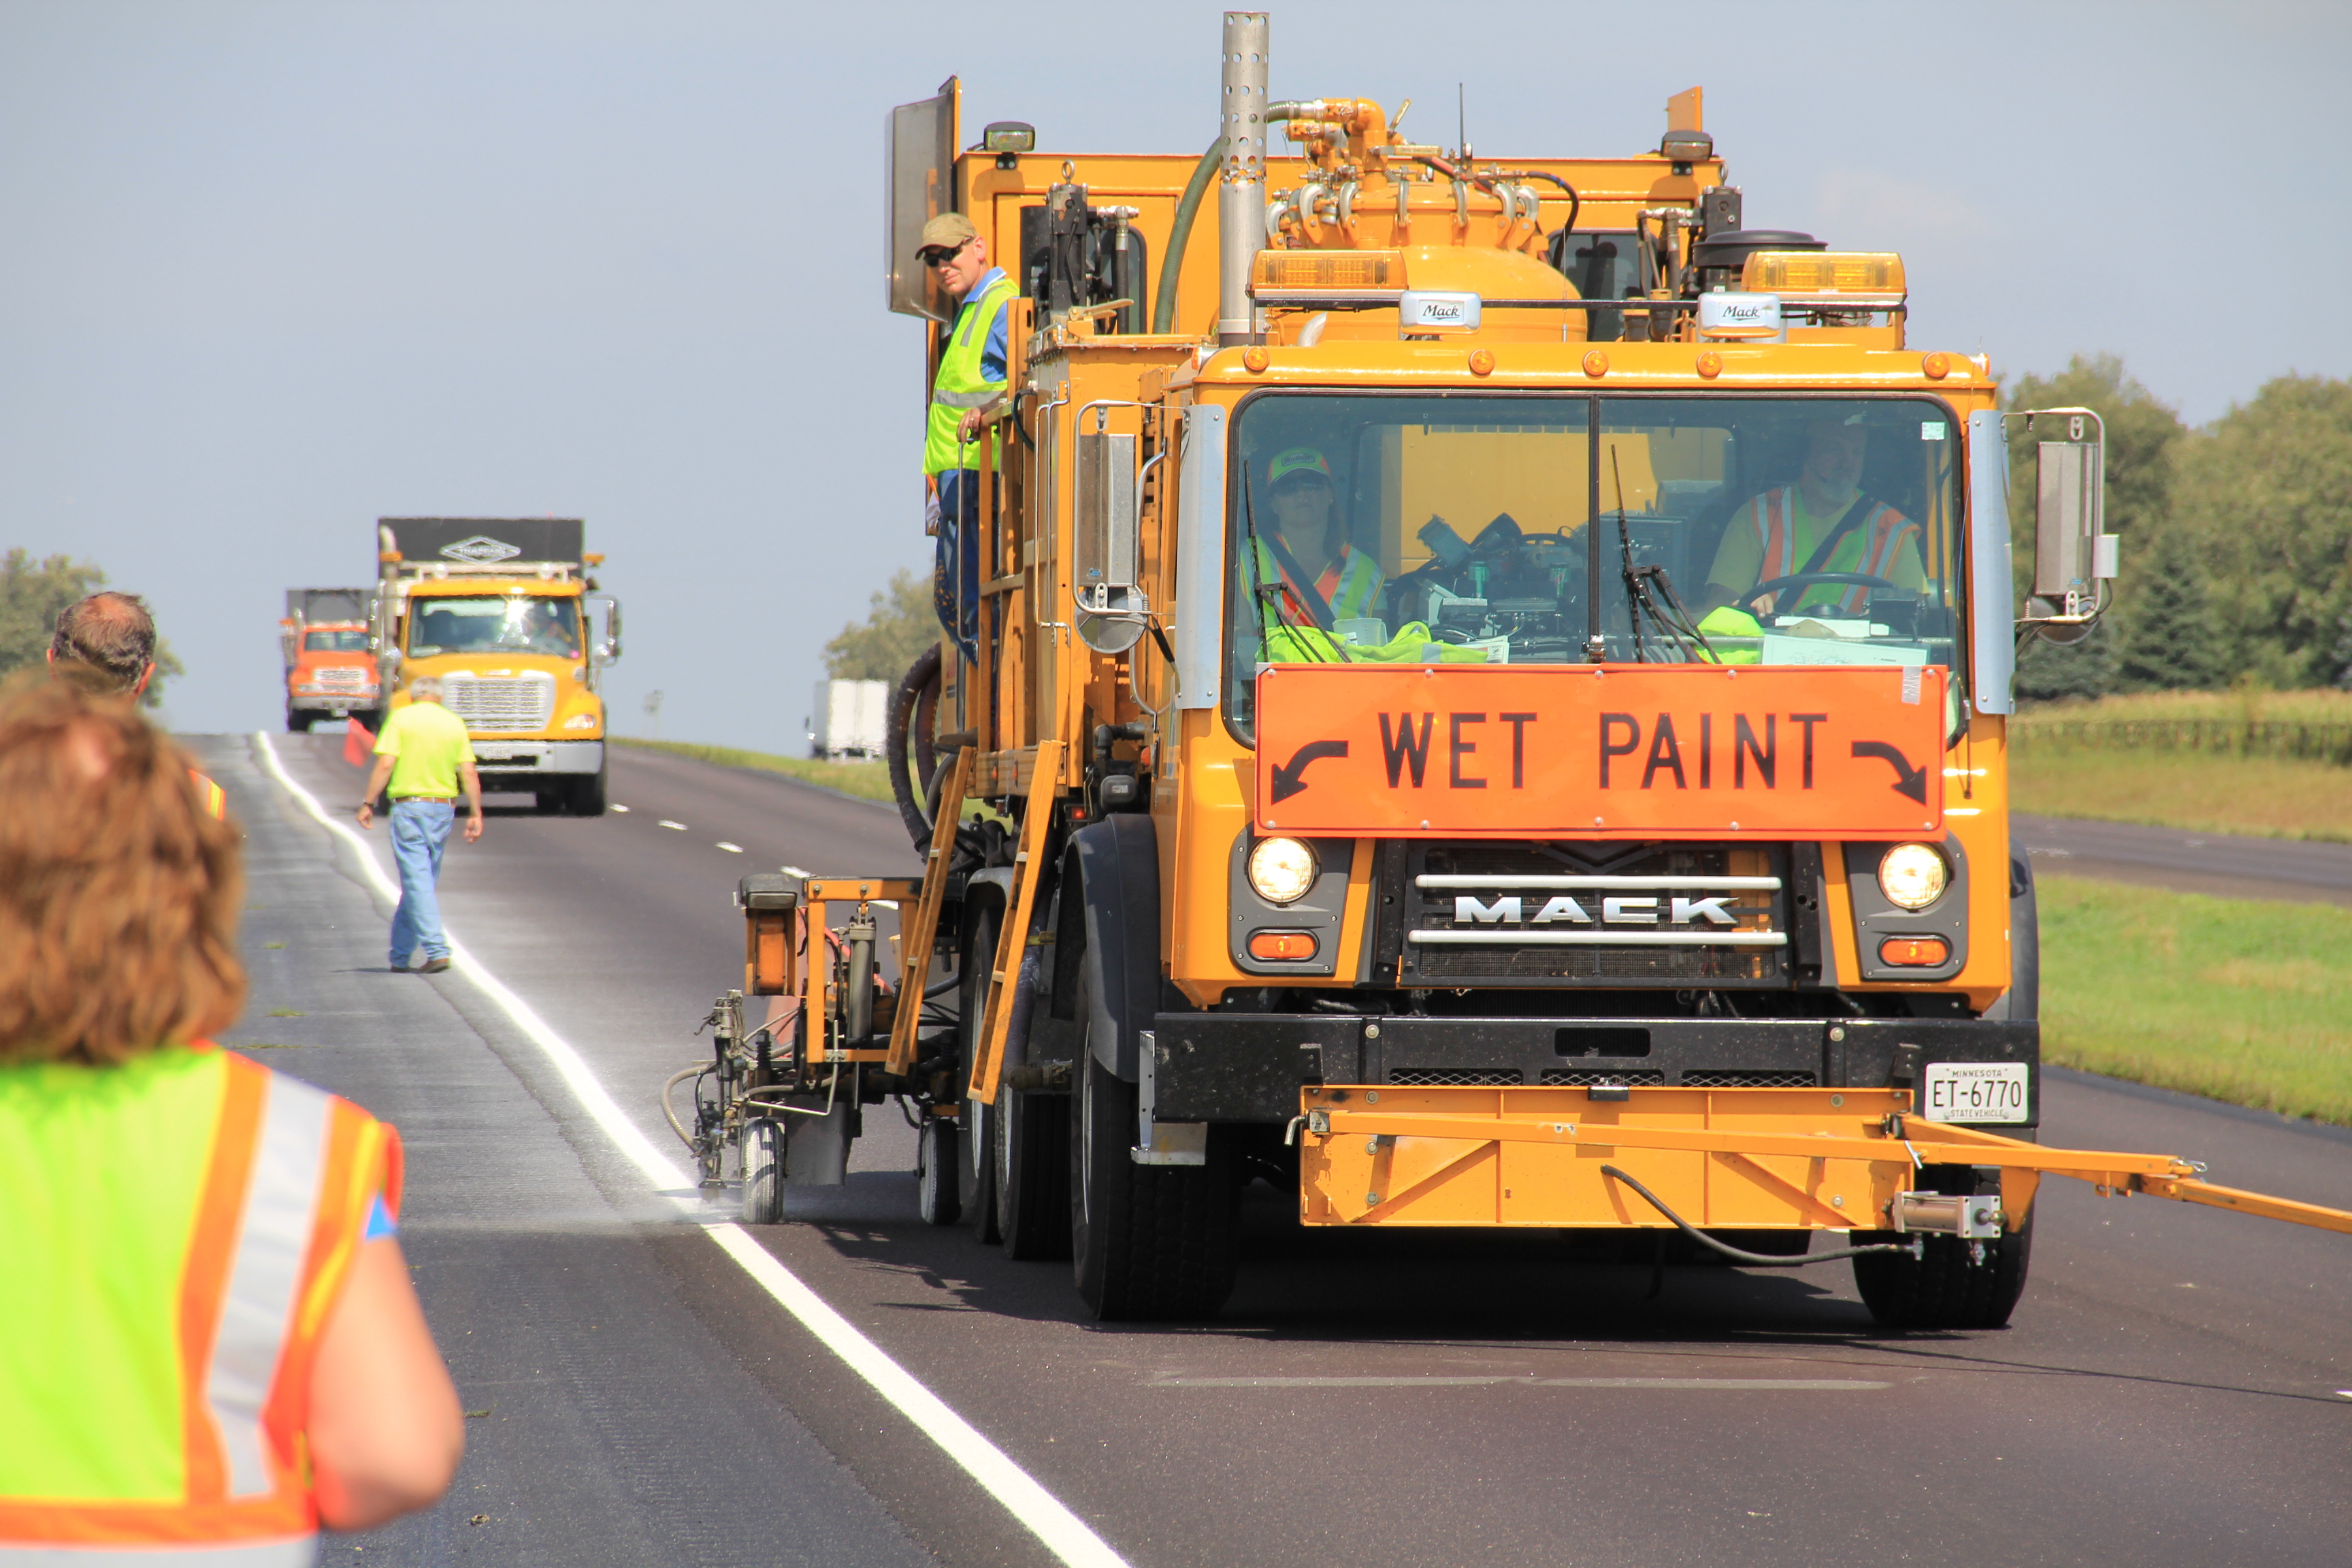 Pavement marking is one area in which road managers can begin preparing for the needs of large CAV vehicle fleets.